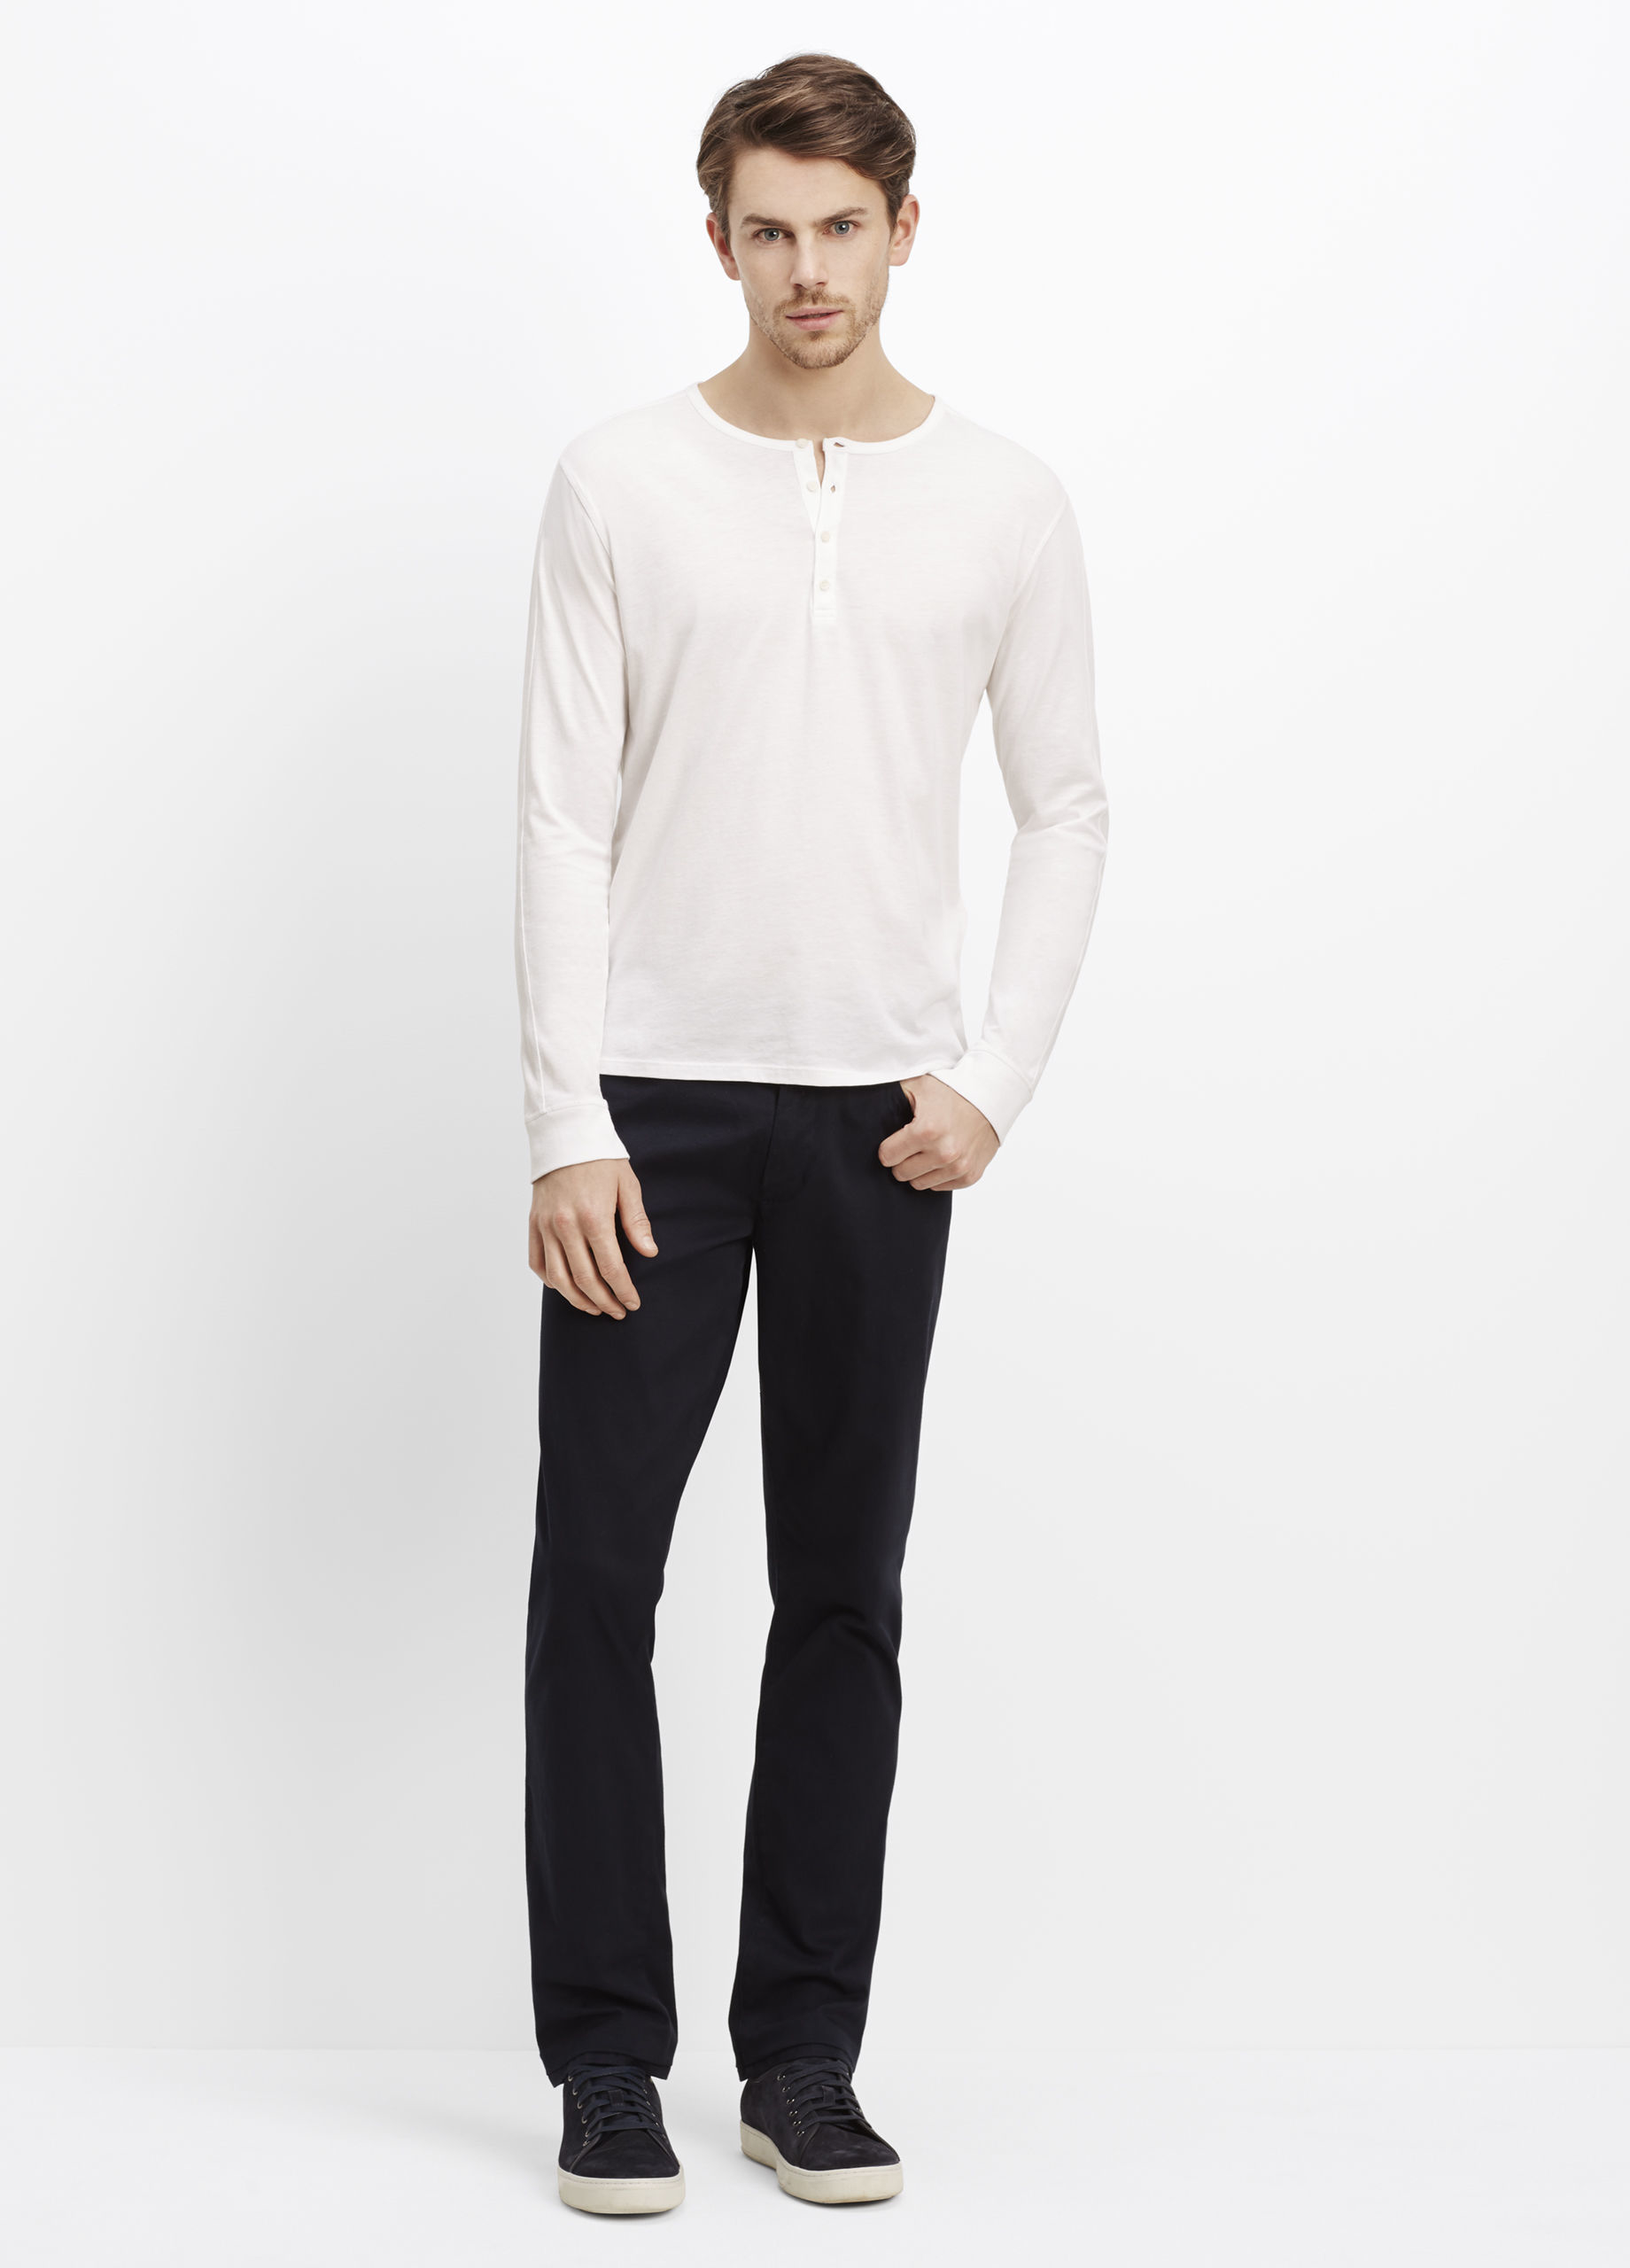 Find great deals on eBay for mens white long sleeve henley. Shop with confidence.